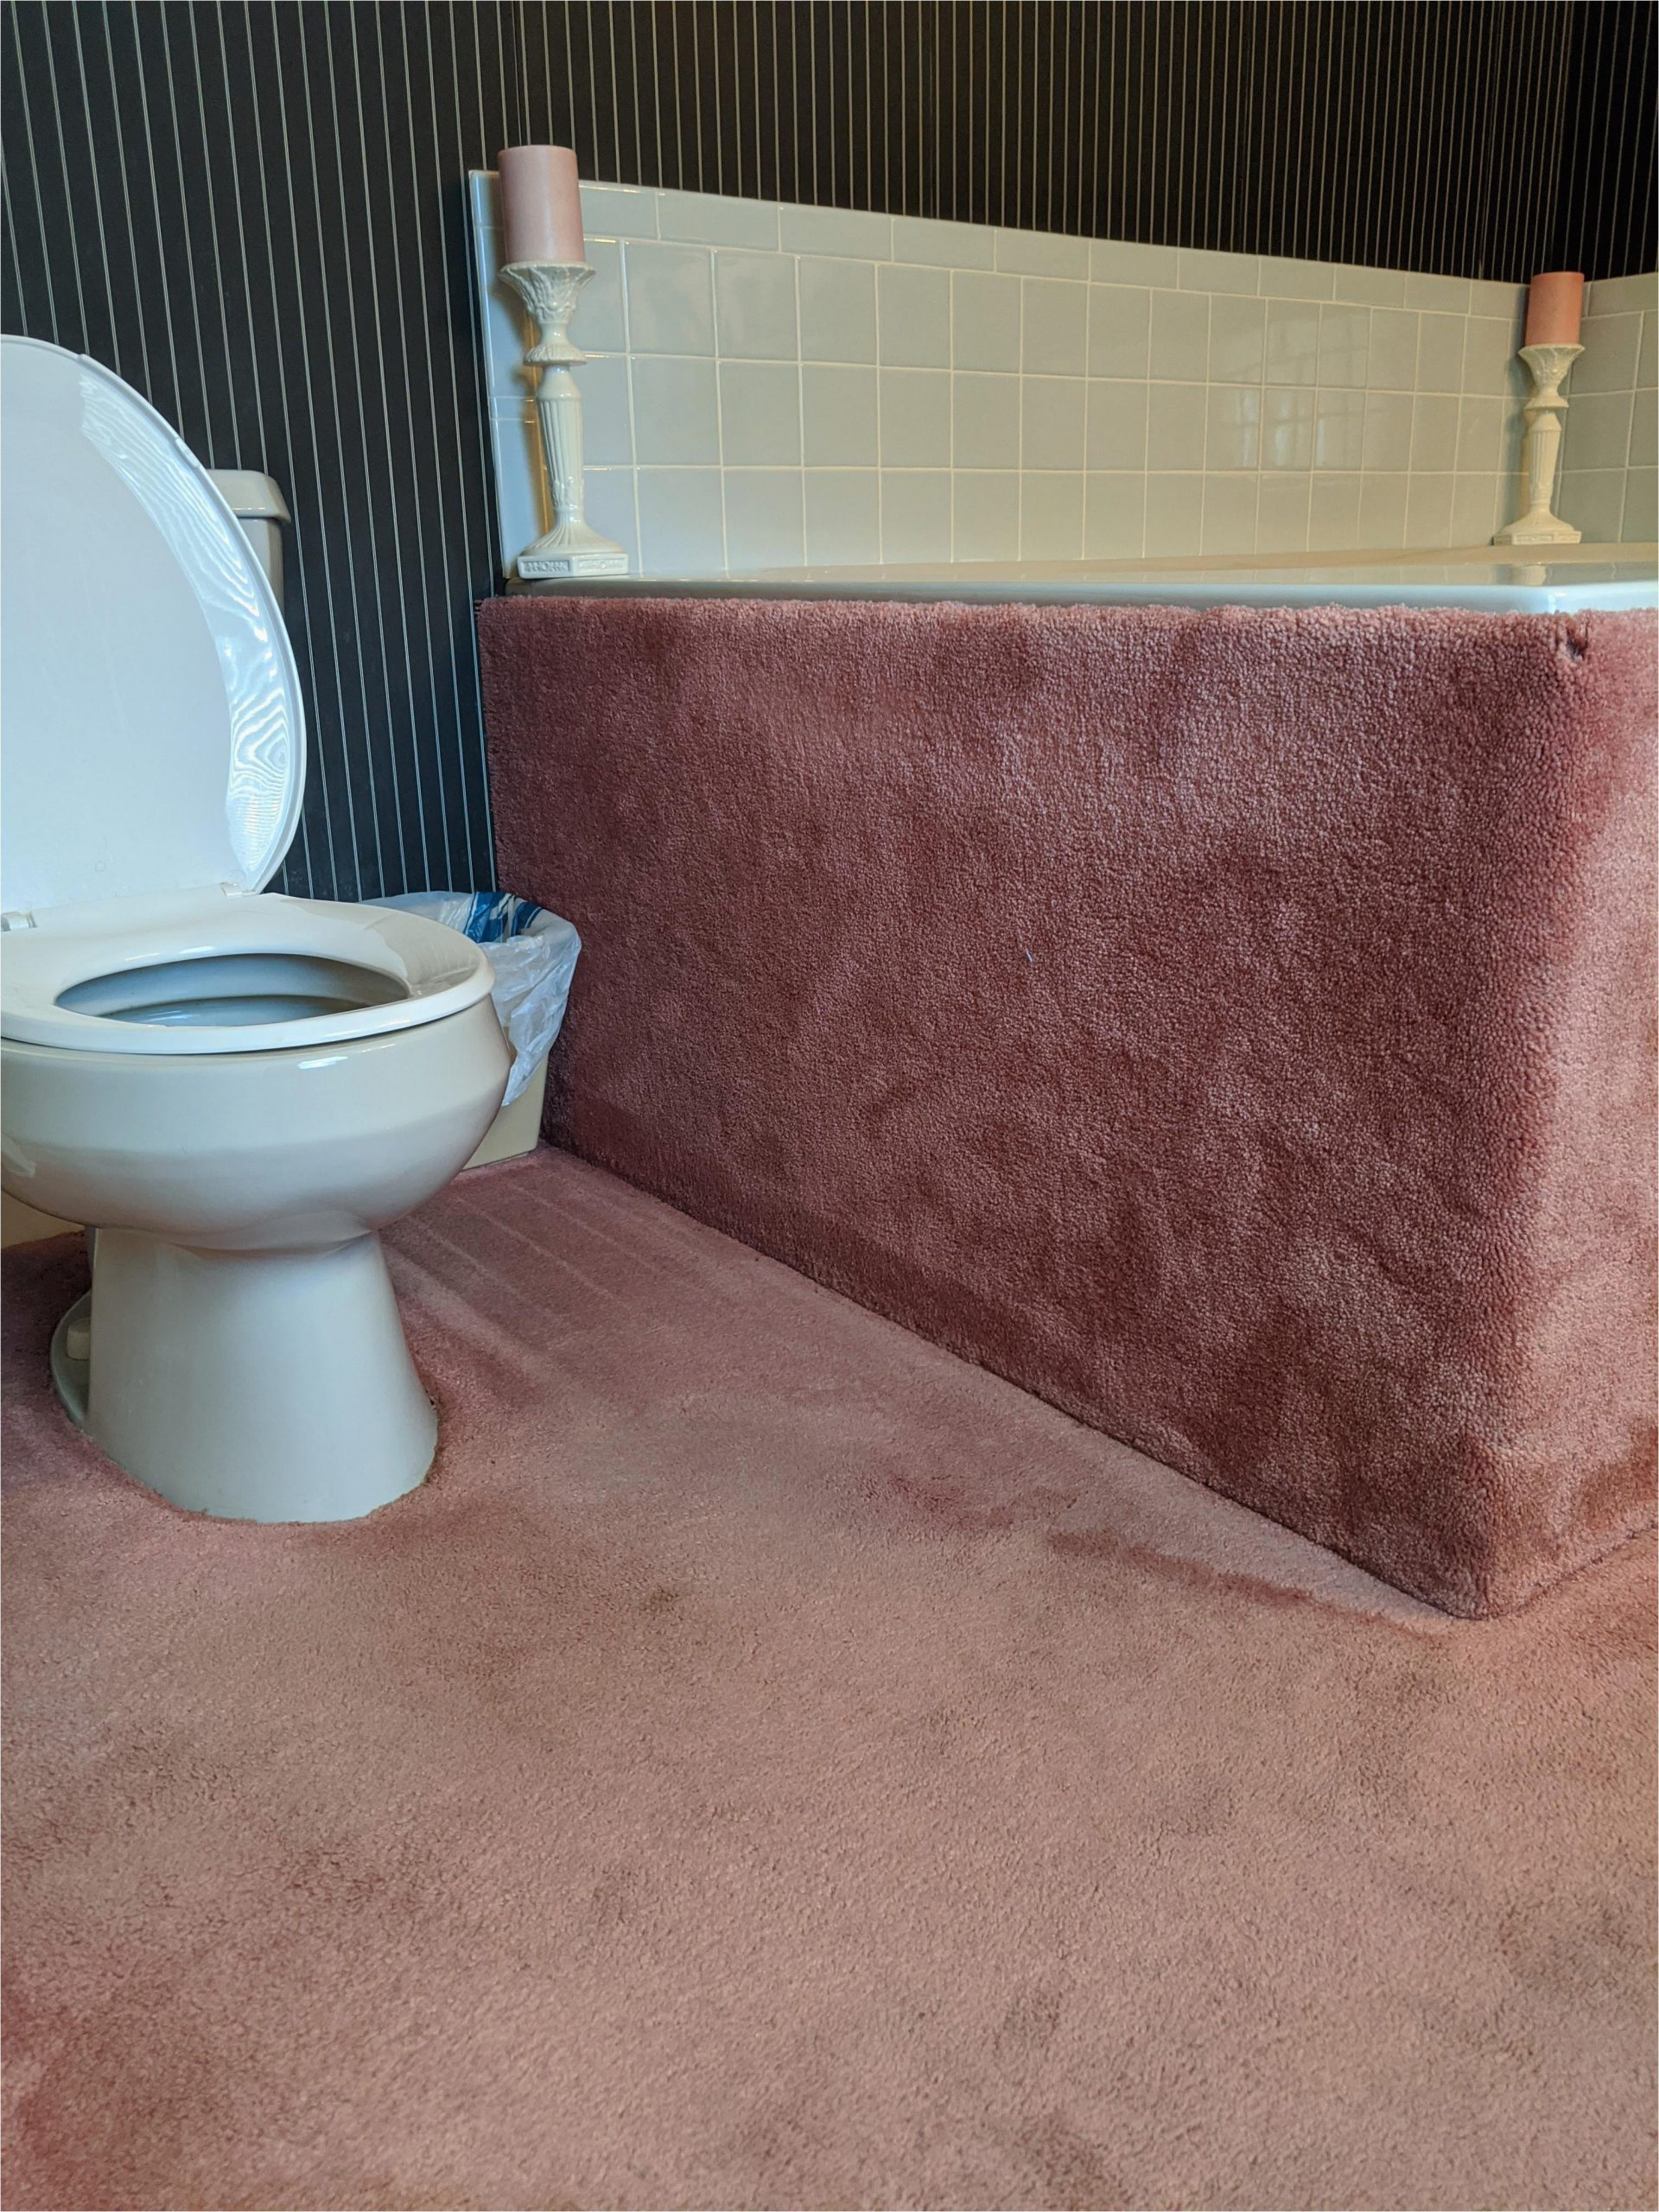 you guys hate carpet in the bathroom i can one up